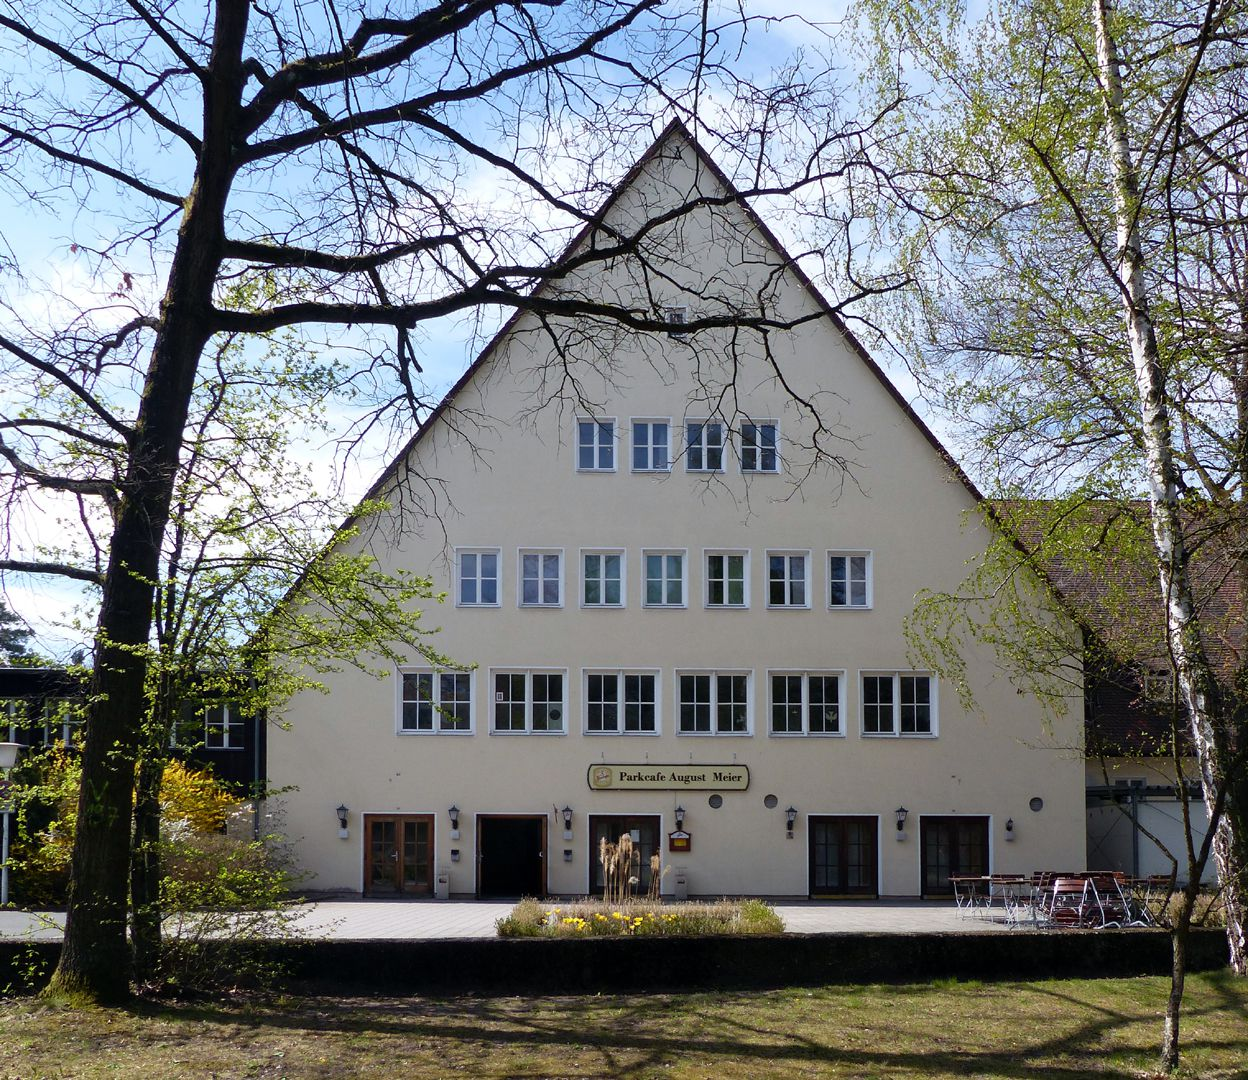 Workers´ accommodations (today August-Meier-Settlement) Main building with dining and reception hall